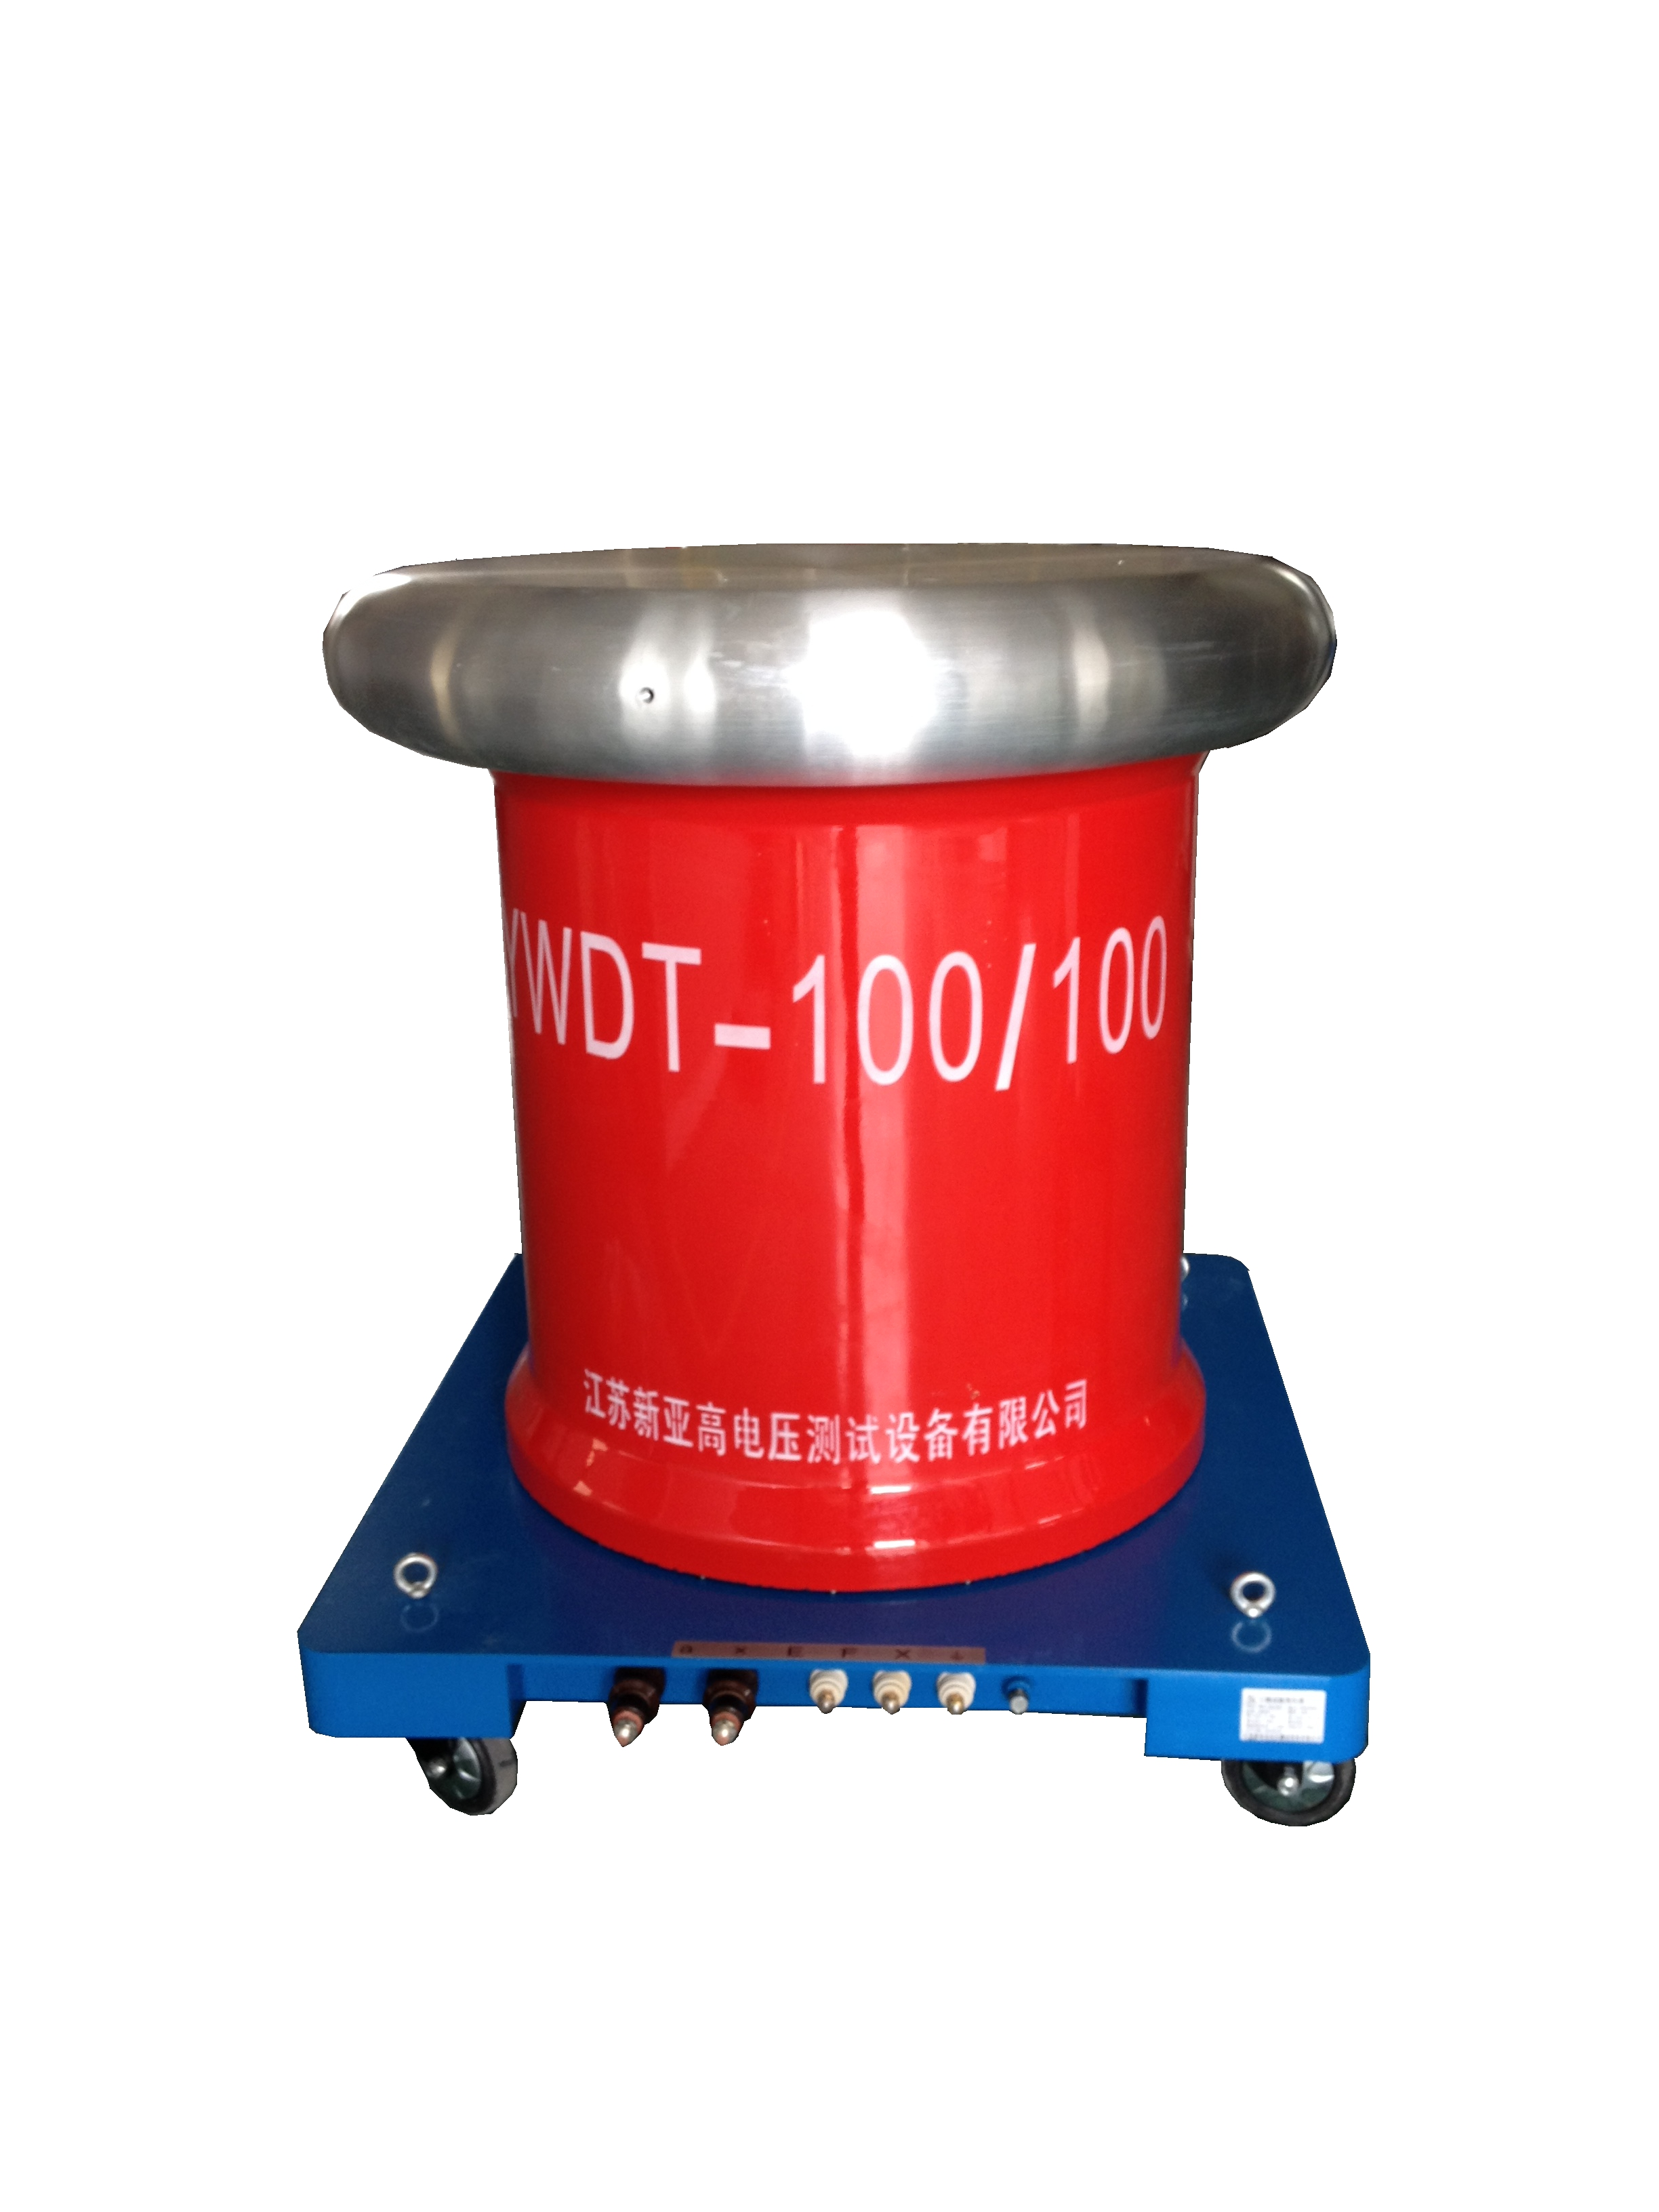 Non PD Test Transformer